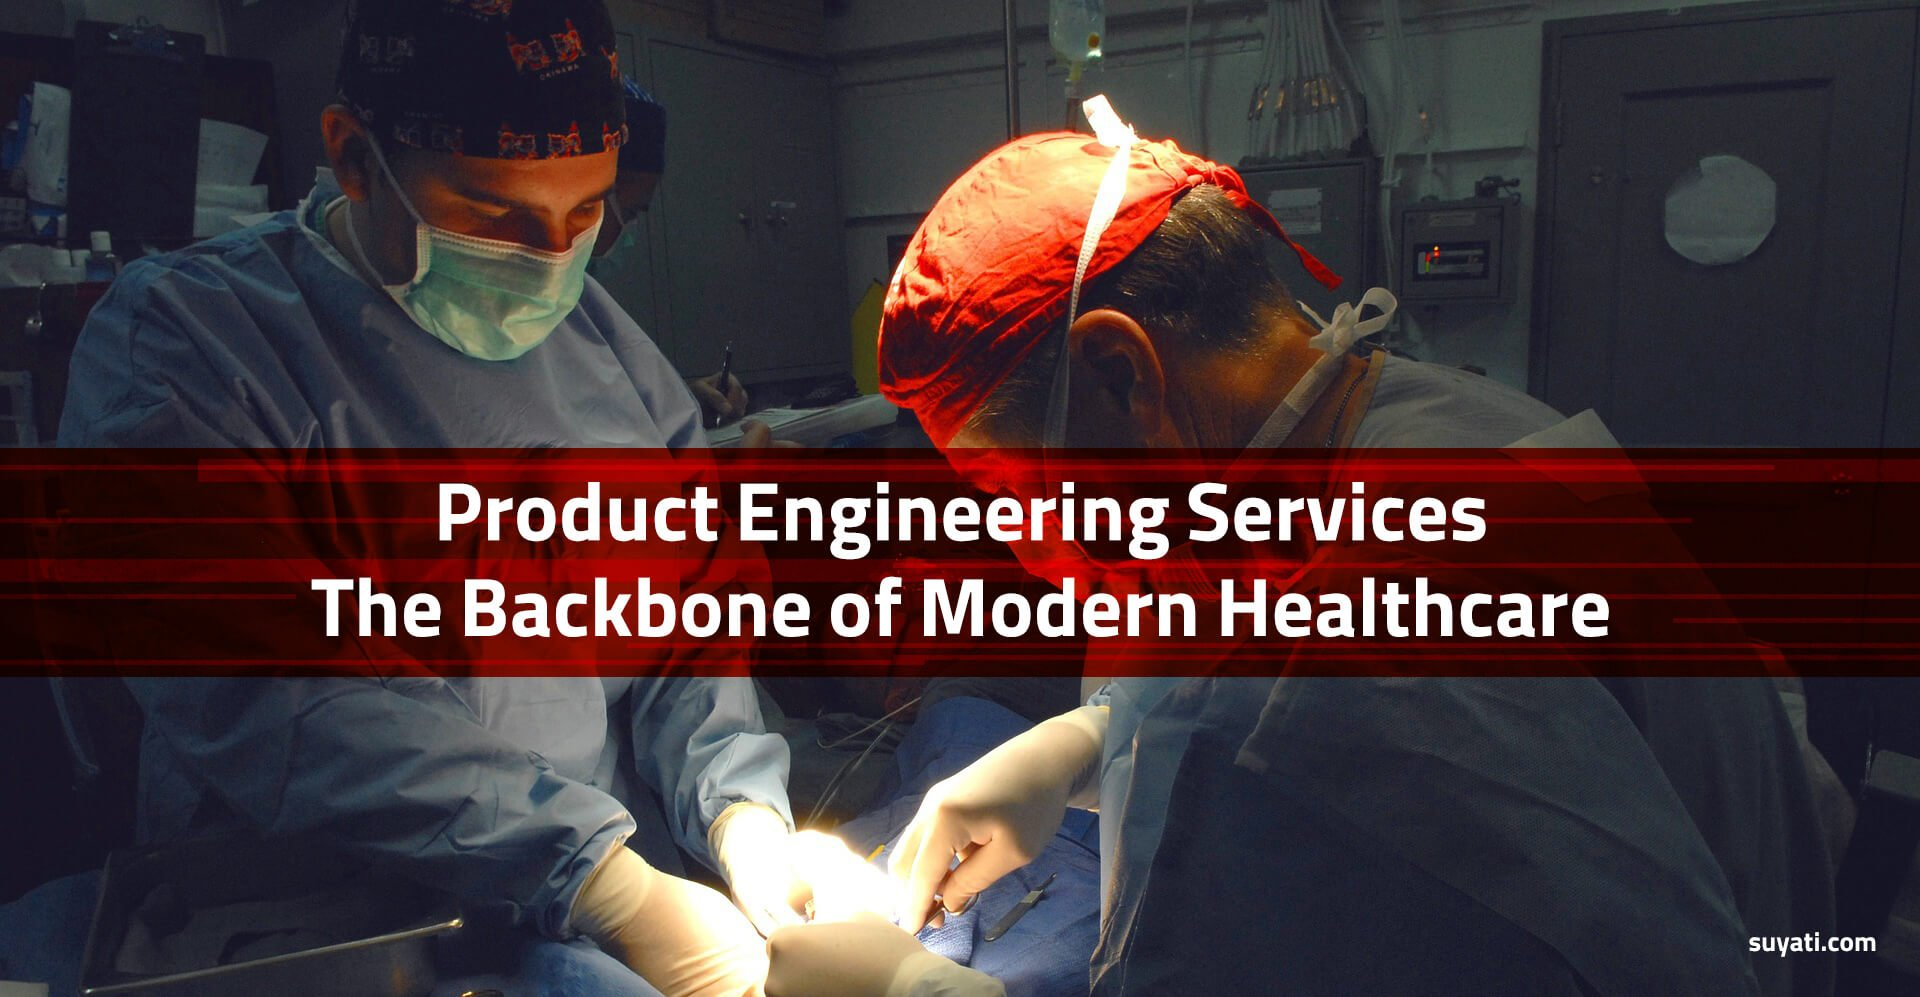 Product Engineering Services in healthcare